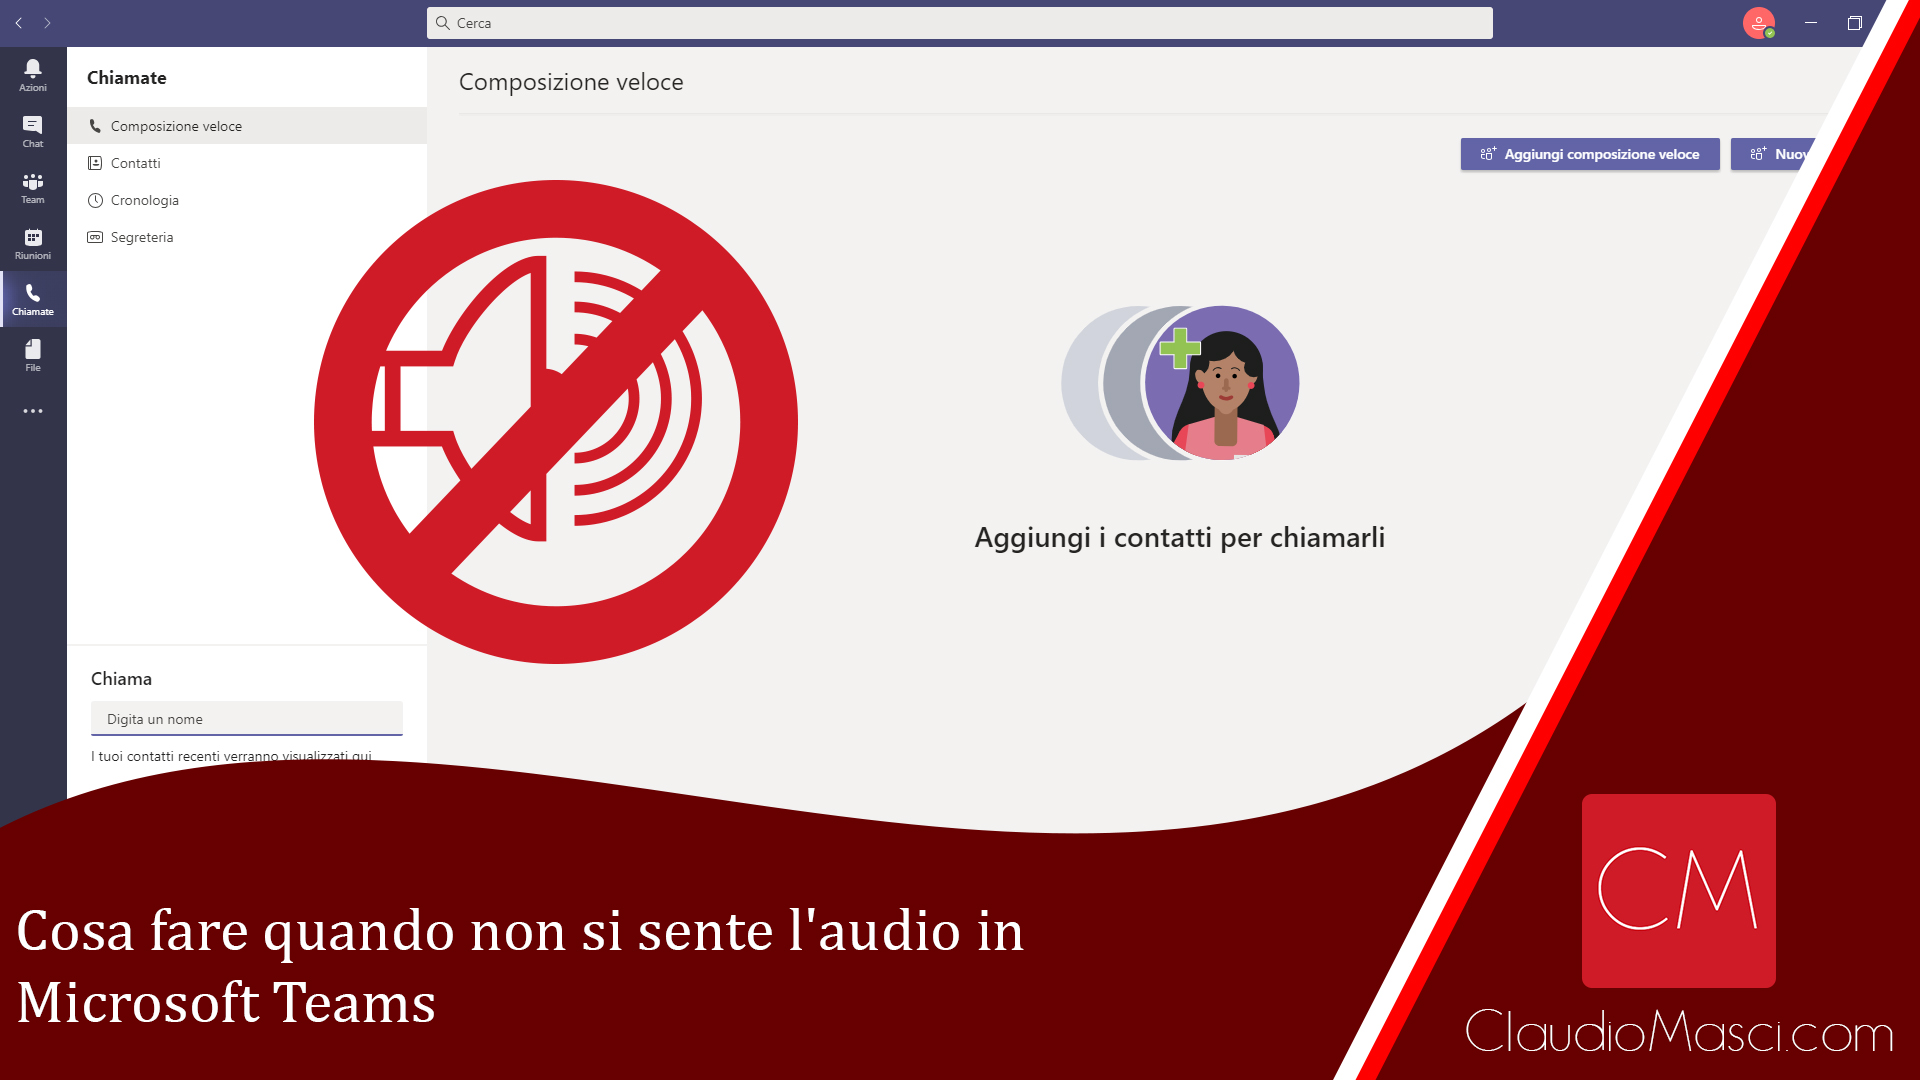 Cosa fare quando non si sente l'audio in Microsoft Teams